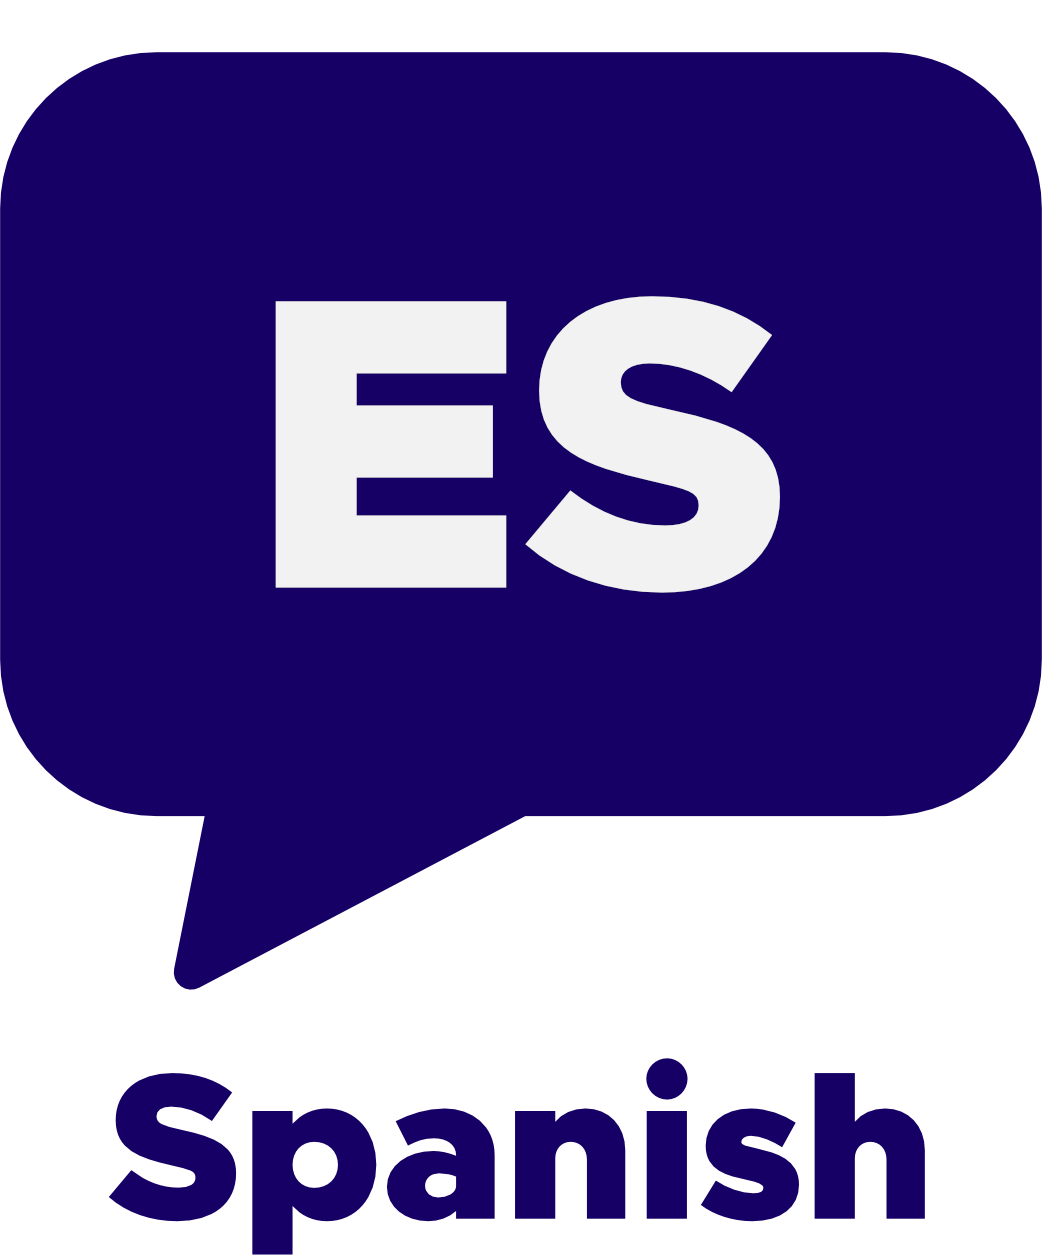 Sygmatic Spanish Language Espanol - Learn a language through practical, everyday topics via immersive videos of native speakers